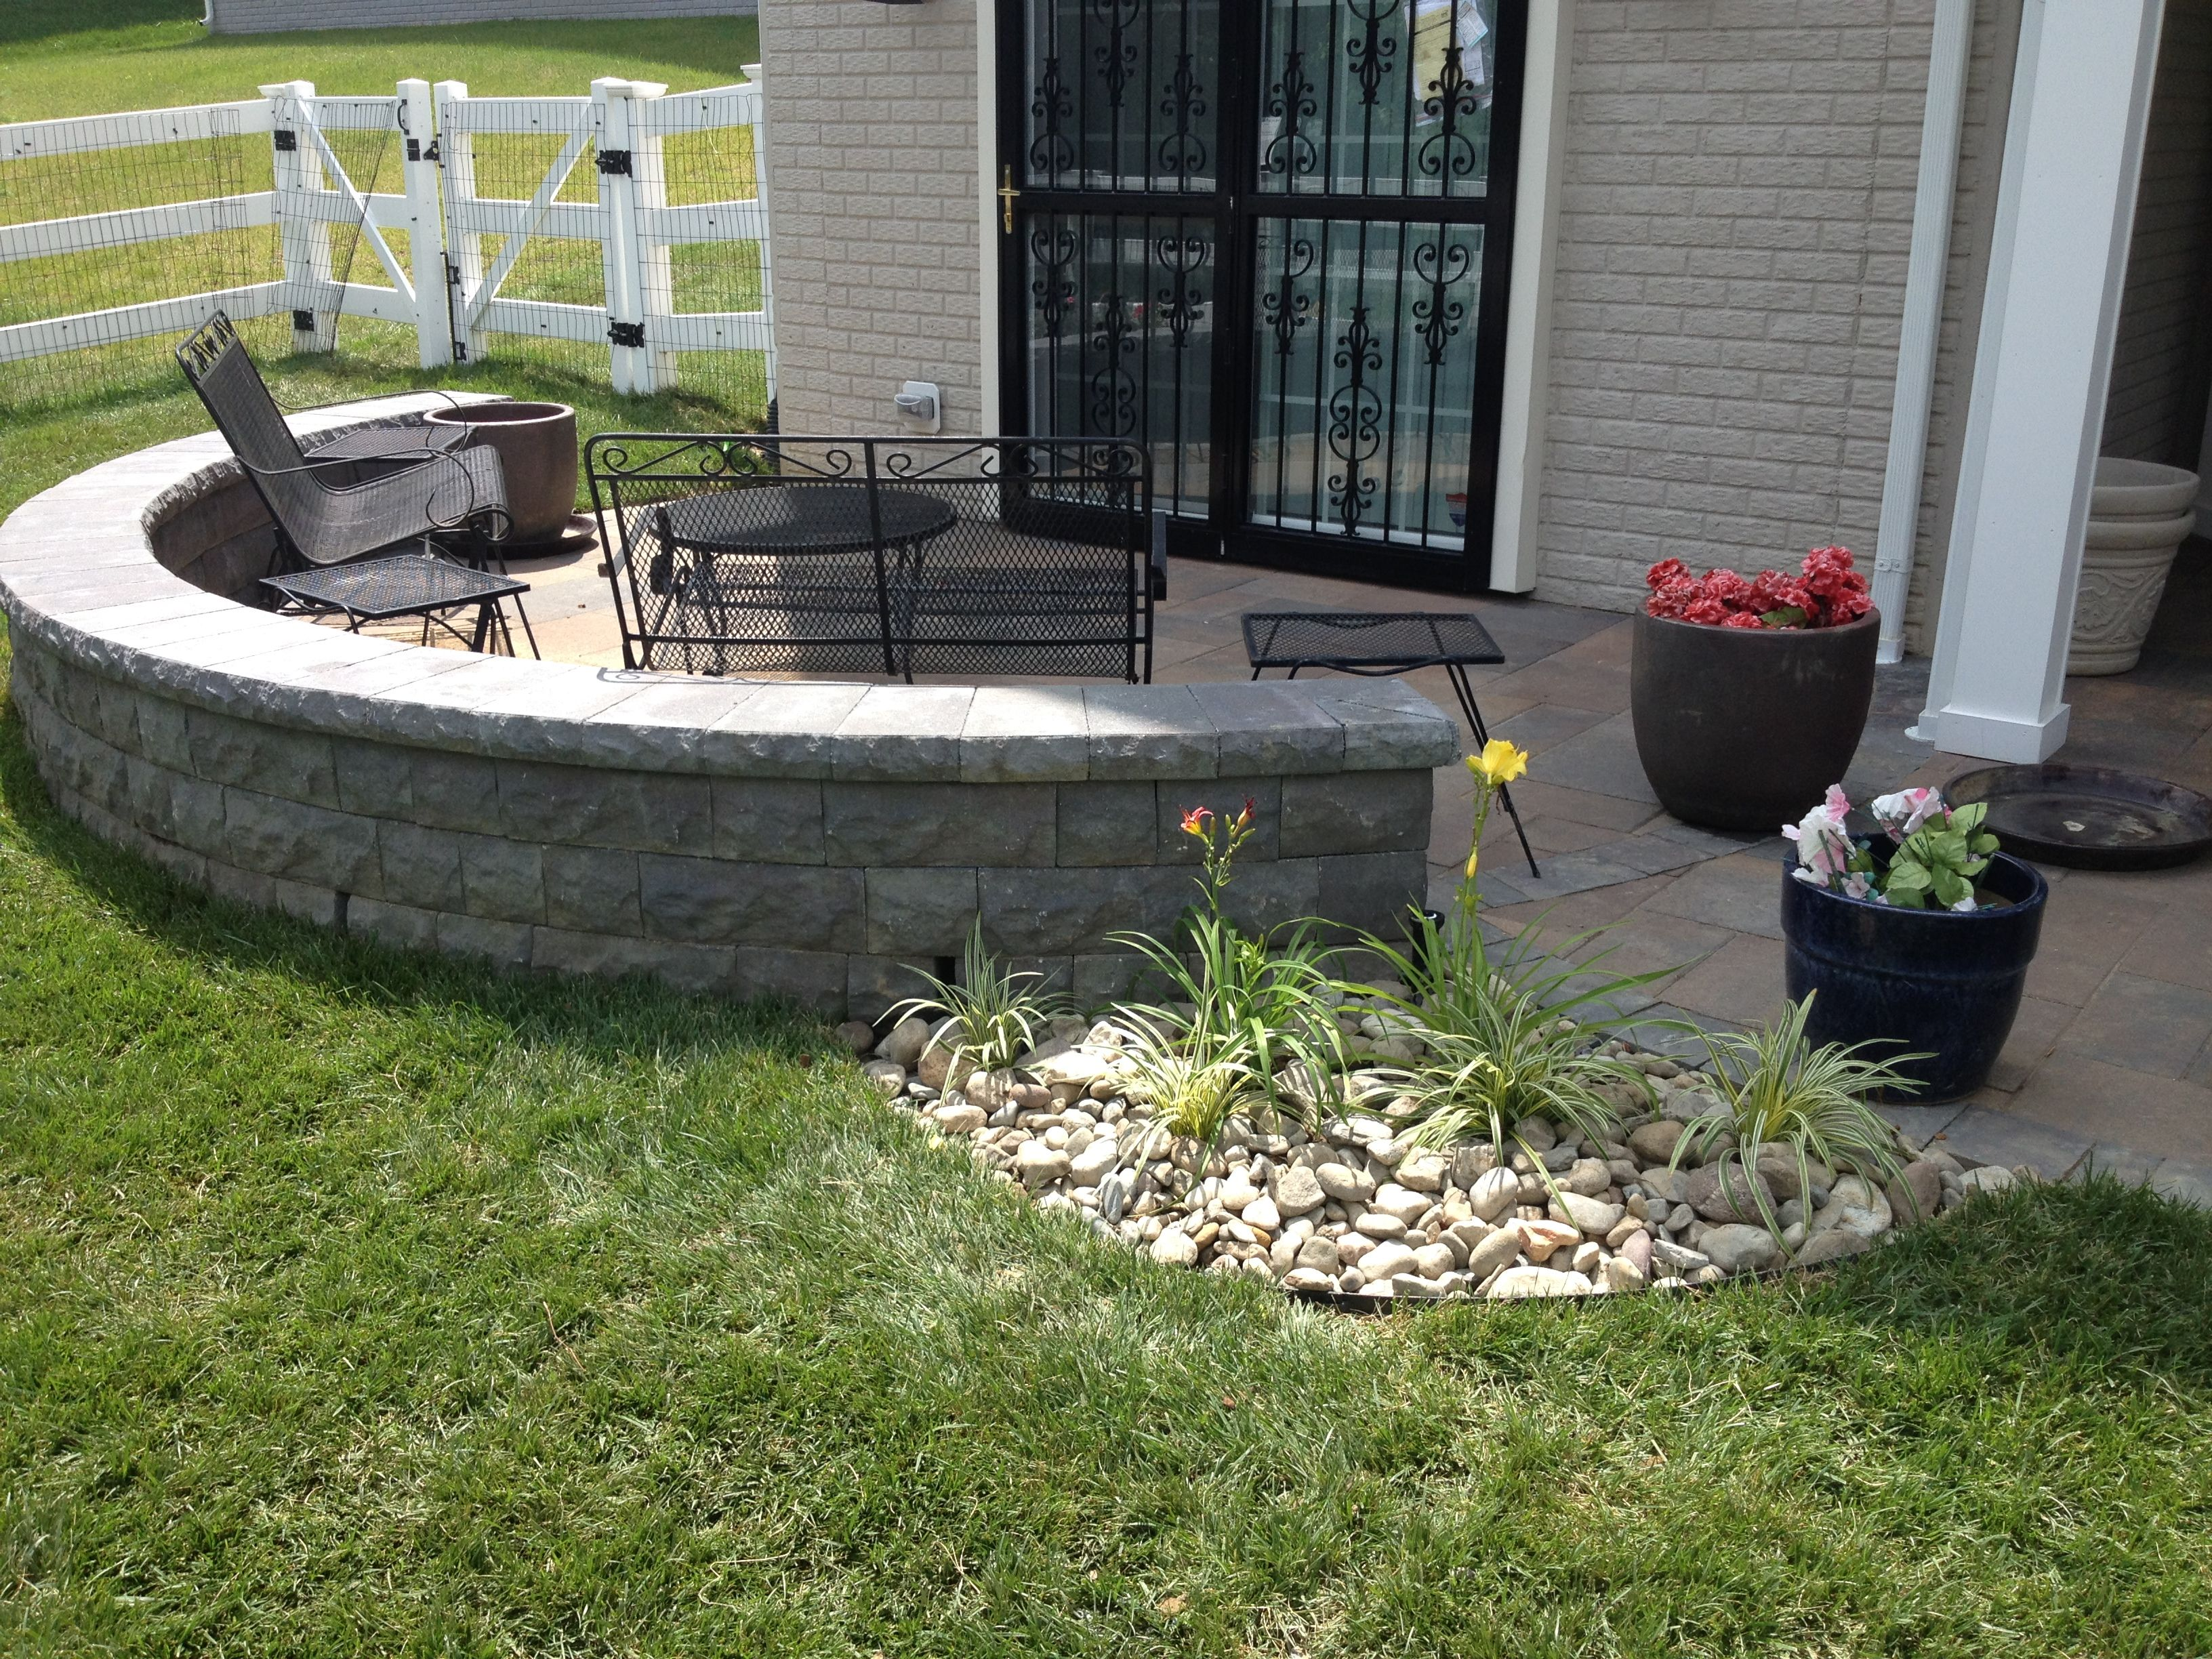 Patio And Seat Wall Bowie Md Backyard Entertainment Area Patio Using Grana Slab In Bella Blend With A Lafit Paver In Backyard Backyard Entertaining Patio